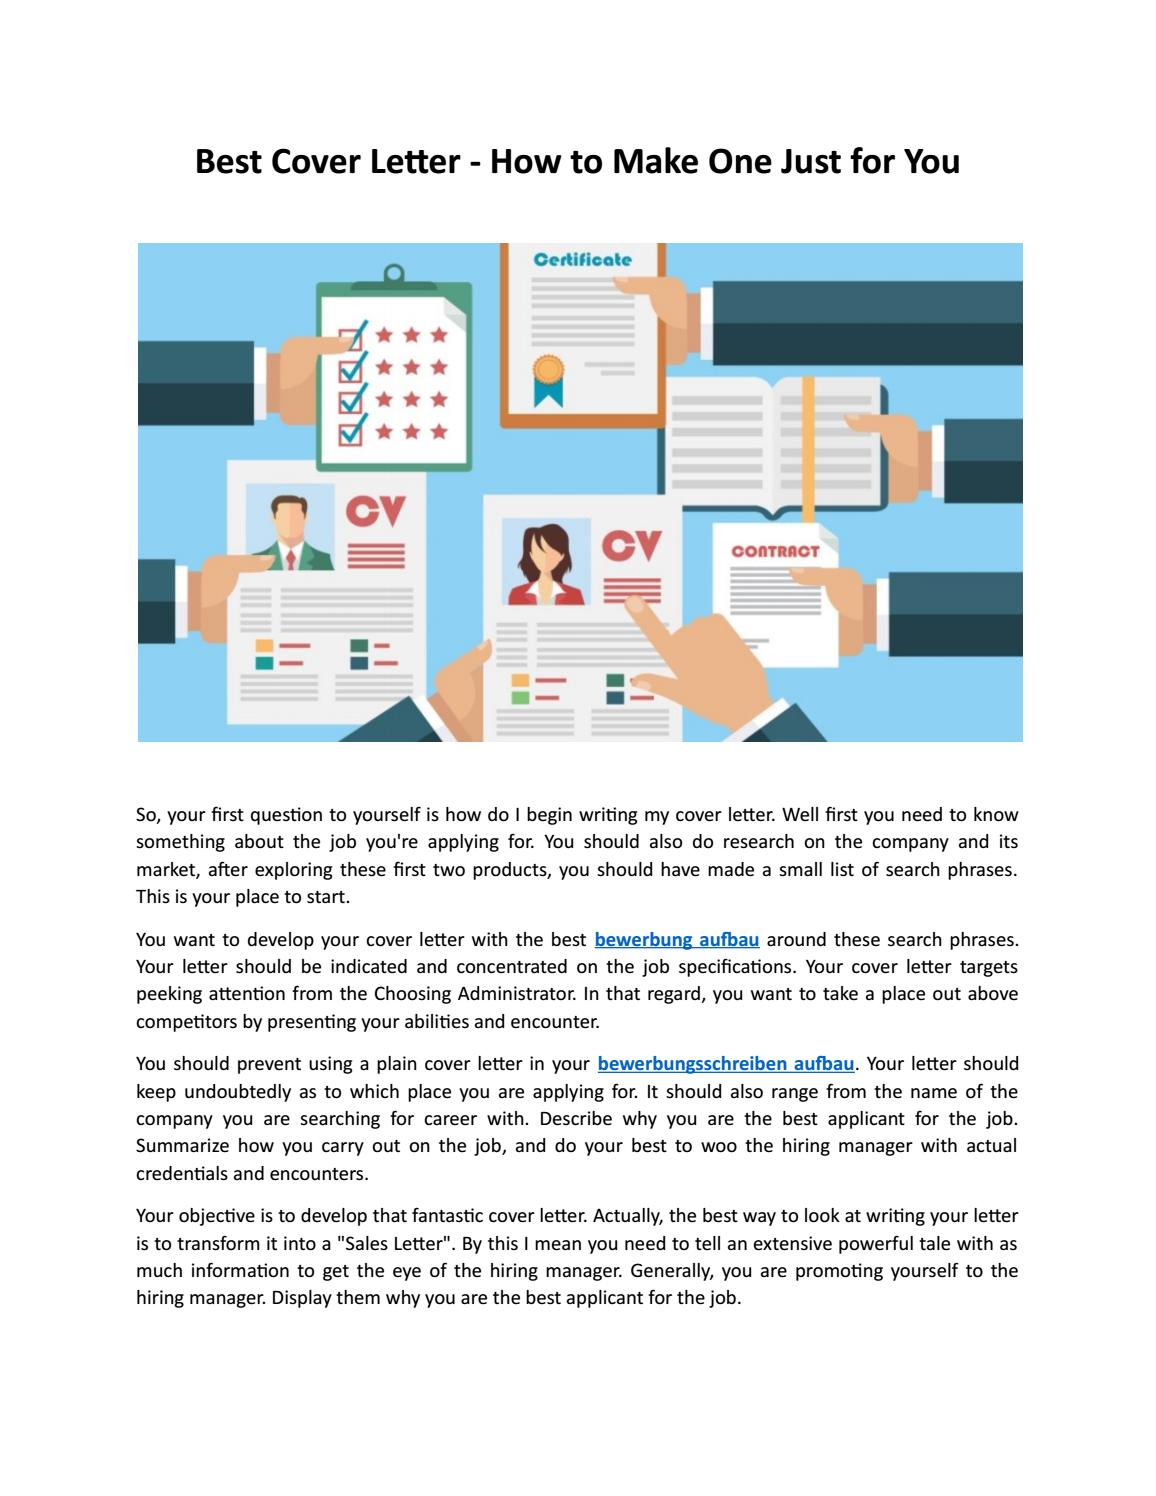 Best Cover Letter How To Make One Just For You By Robert Schmidt Issuu